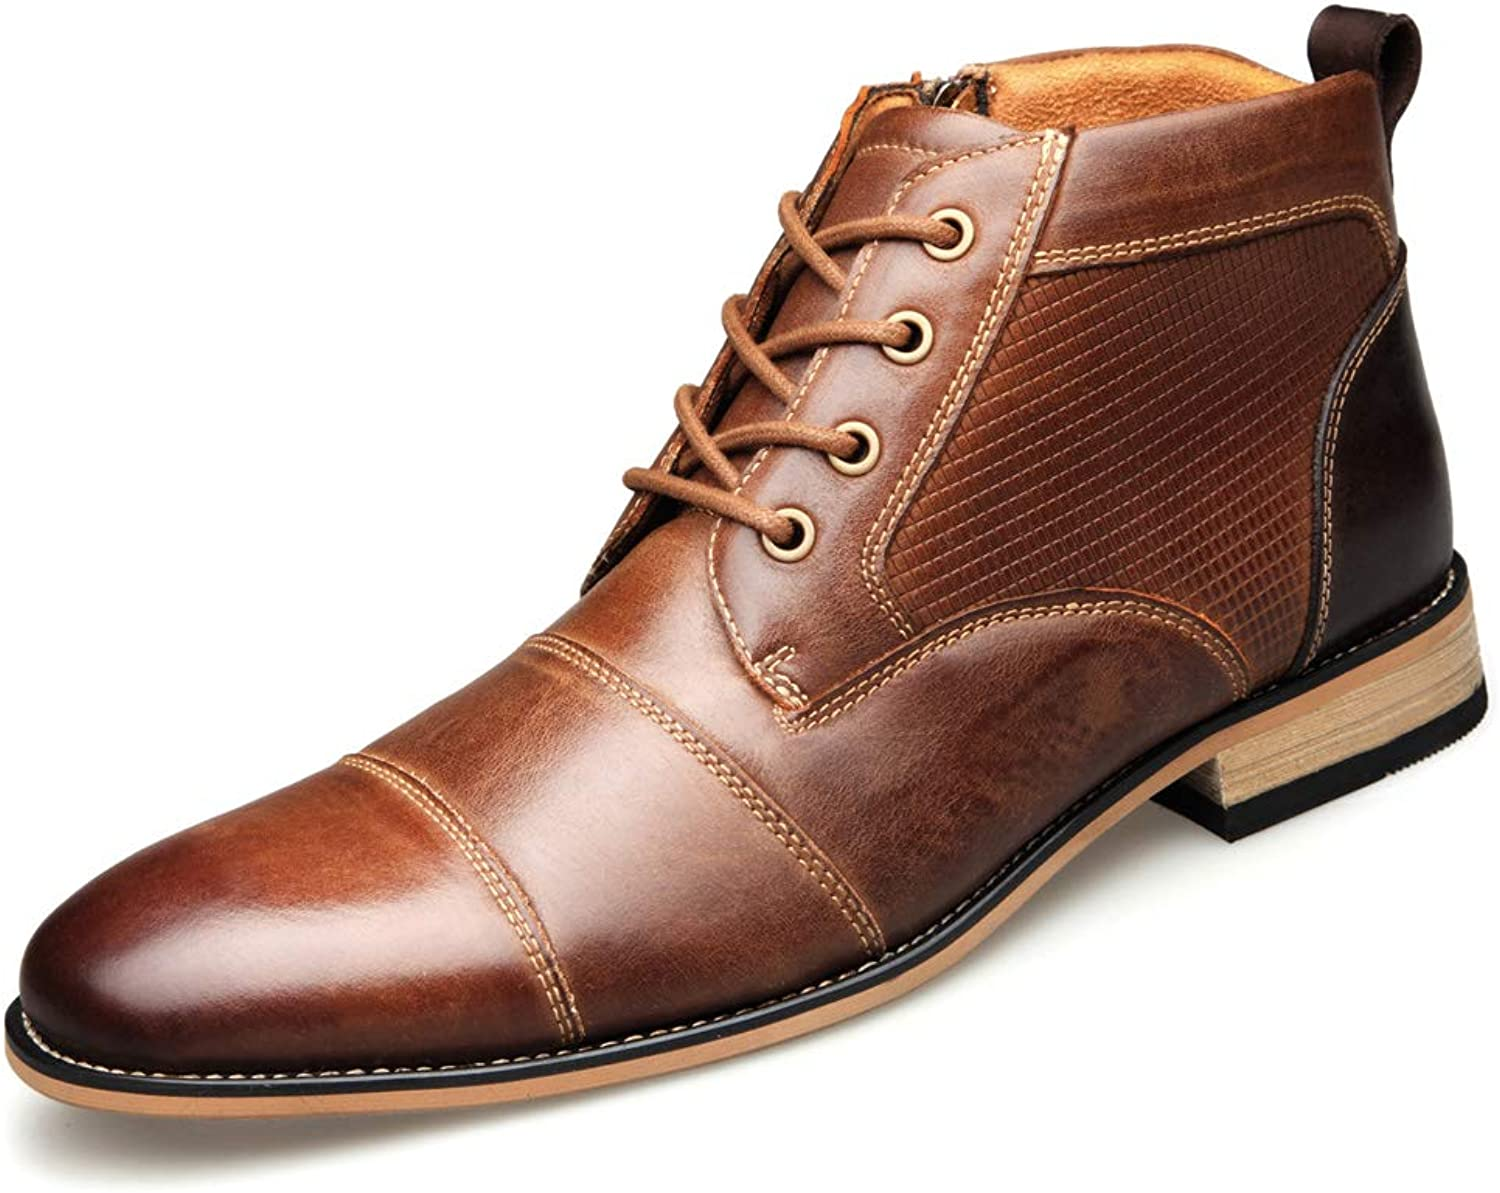 Mens Chukka Boot Dress shoes Strap Cap Toe Boot Formal Casual Oxford Ankle Boot